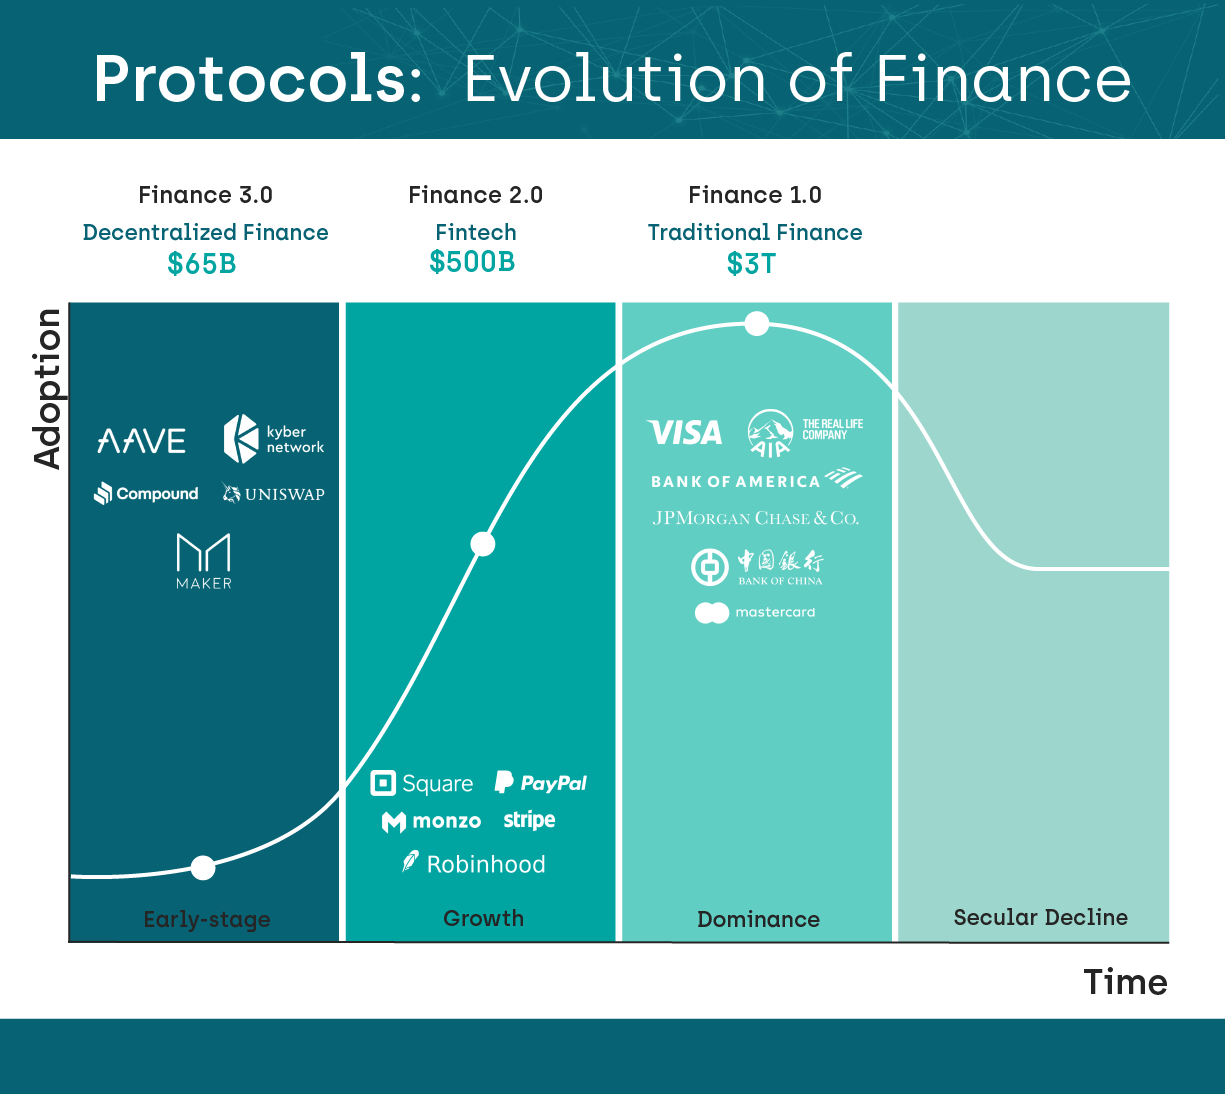 An overview of the stages which finance is moving through towards Decentralized Finance